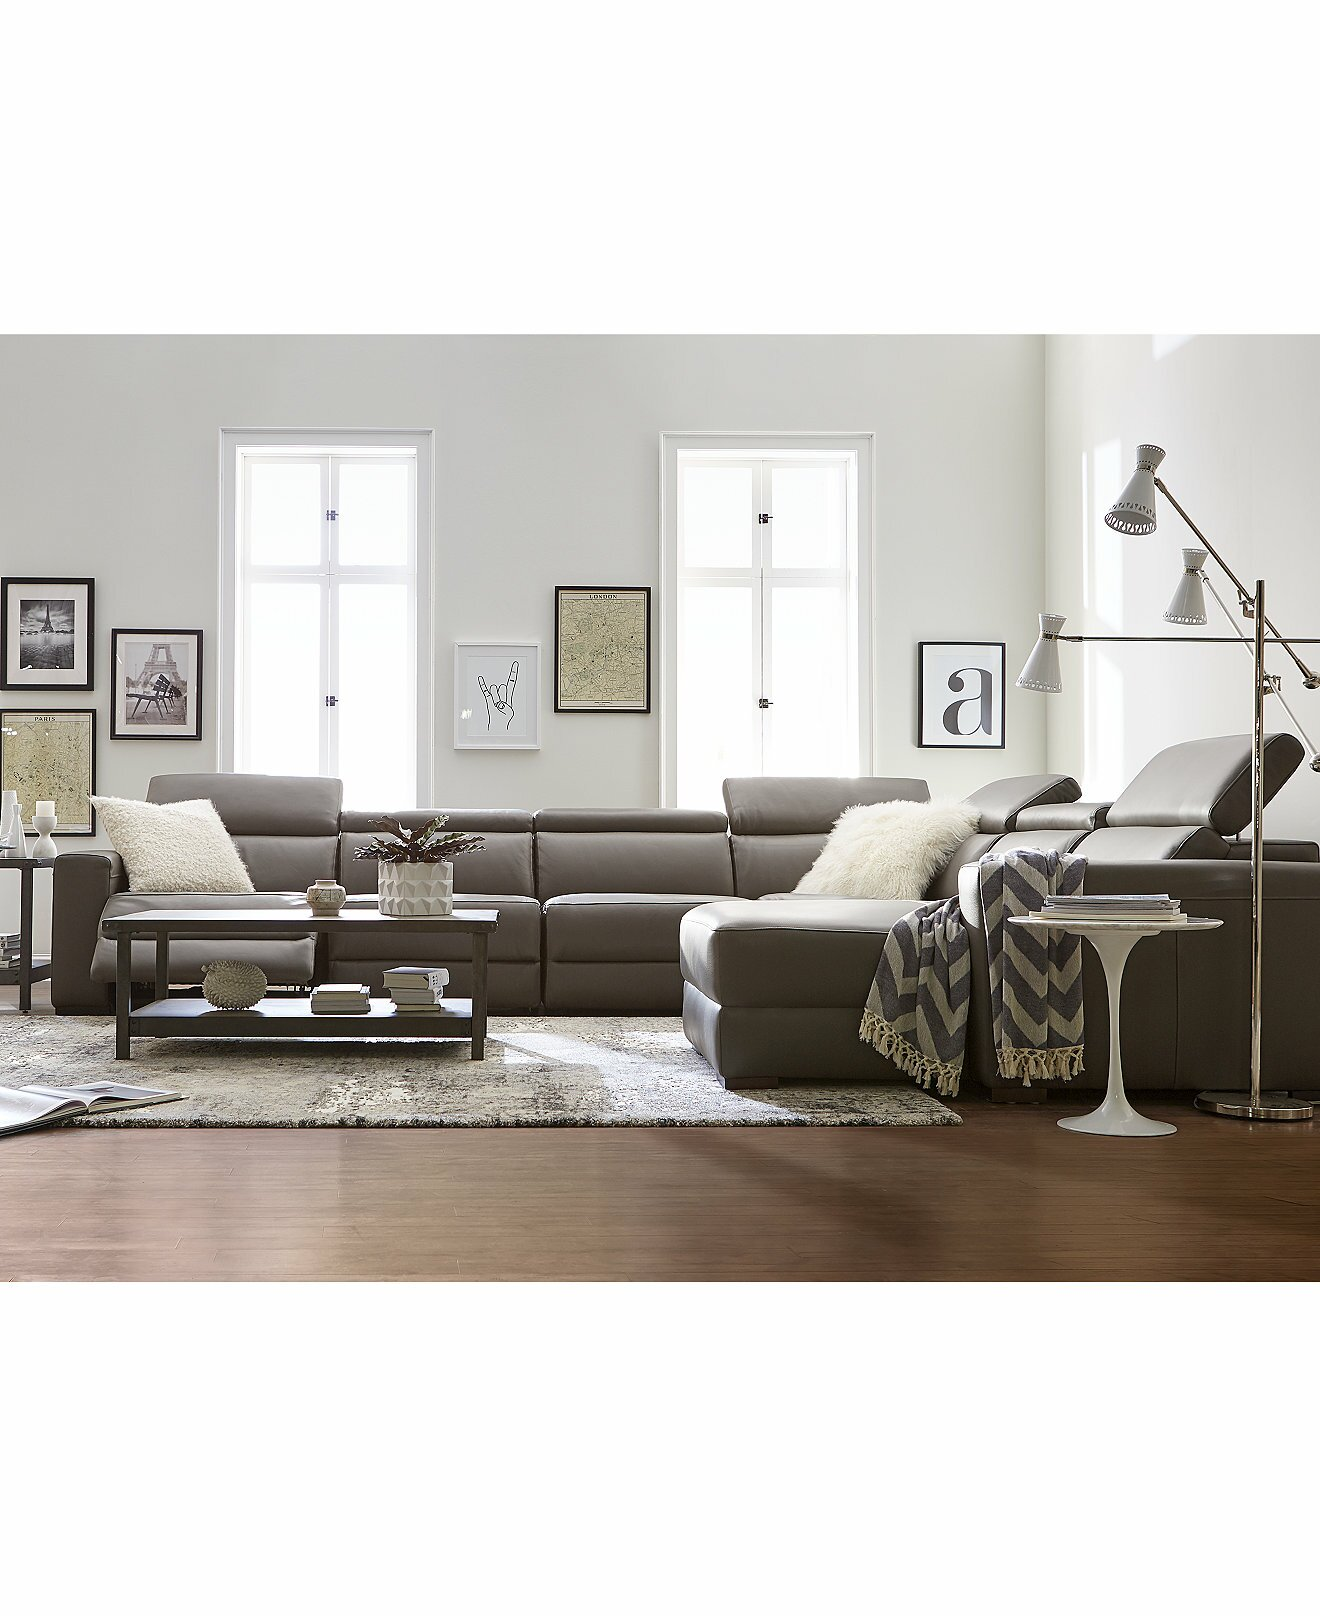 Www Macyfurniture: Sofas: Elegant Living Room Sofas Design By Macys Sectional